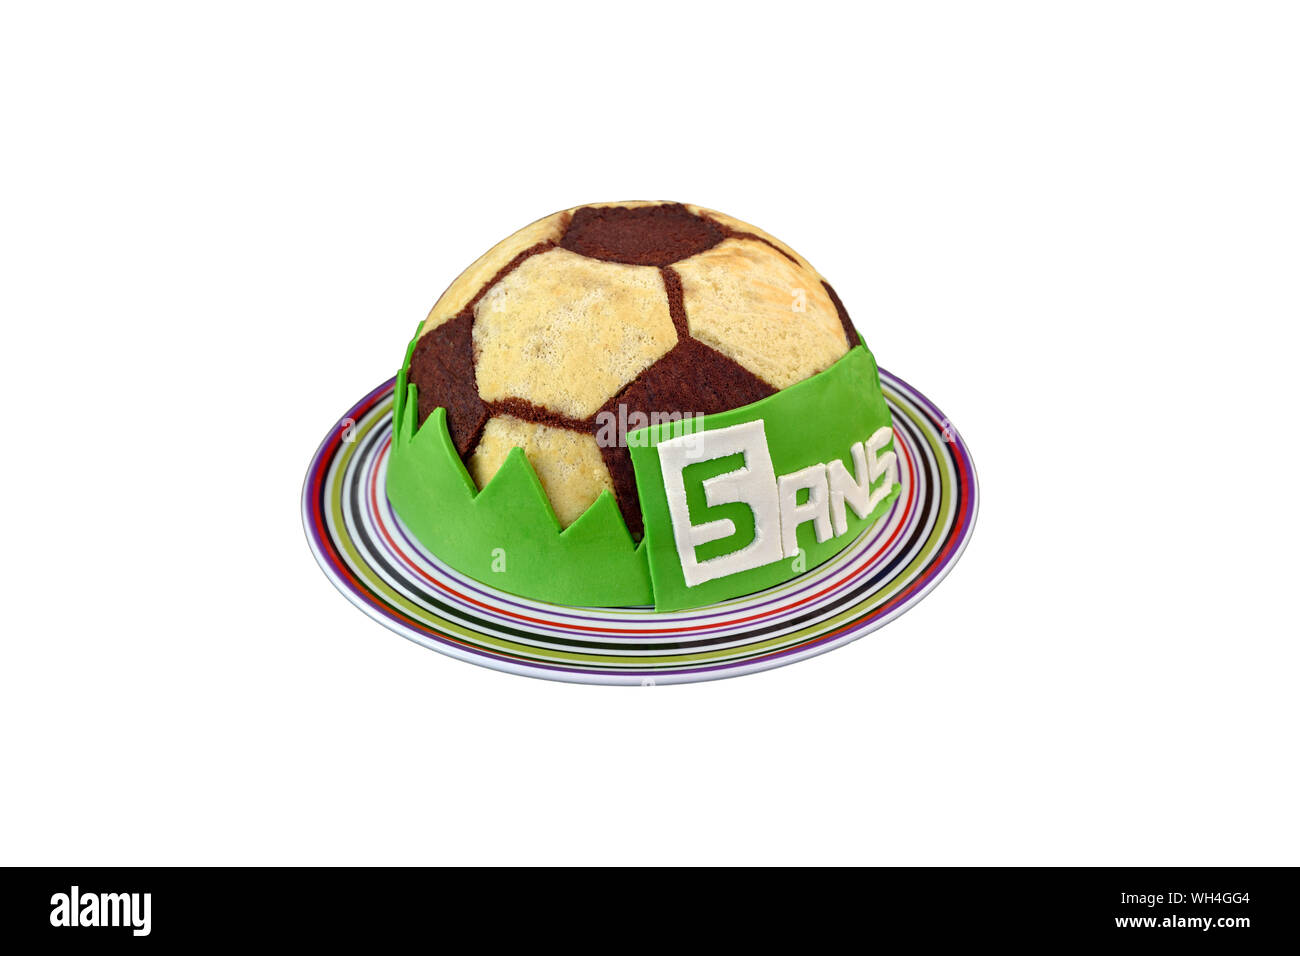 Stupendous Beautiful Soccer Ball Birthday Cake For The Fifth Anniversary 5 Personalised Birthday Cards Paralily Jamesorg